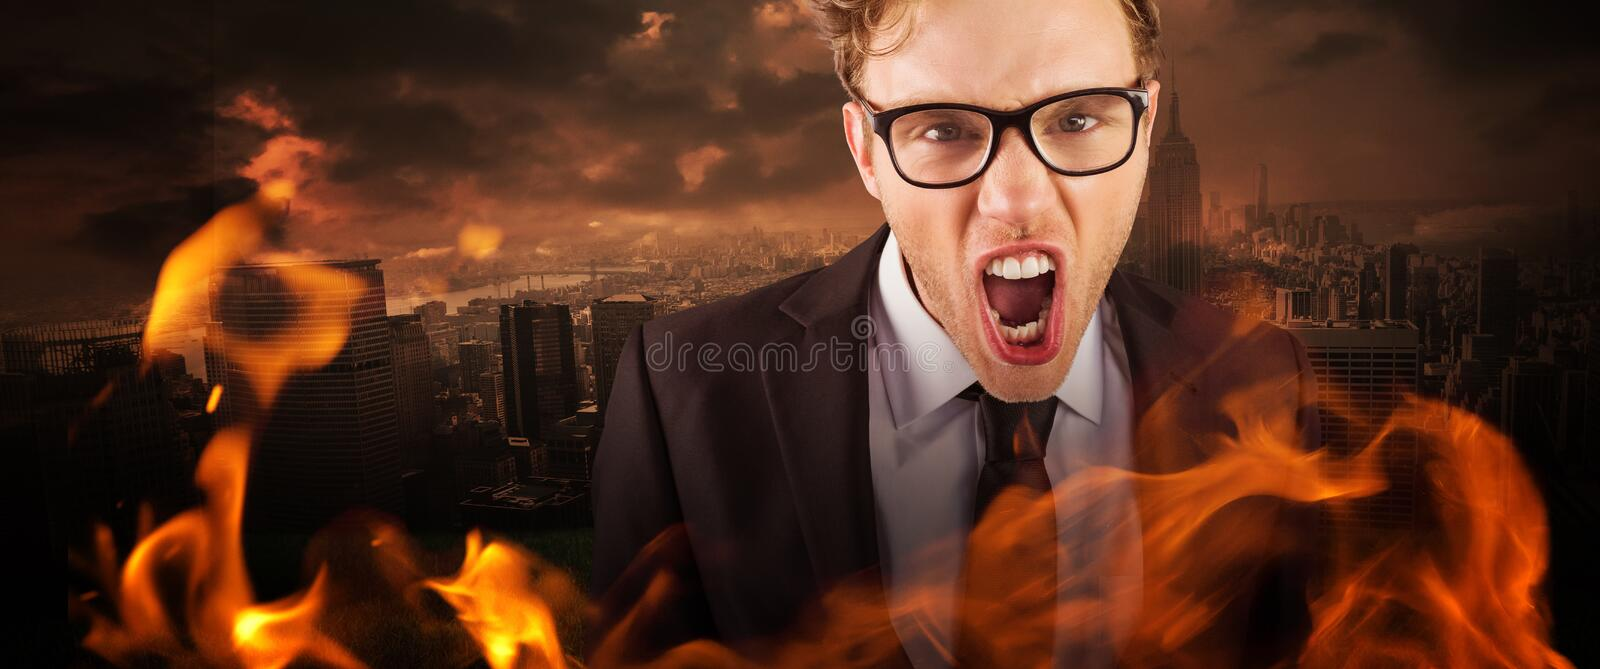 Composite image of young angry businessman shouting at camera. Young angry businessman shouting at camera against stormy sky over city stock photo